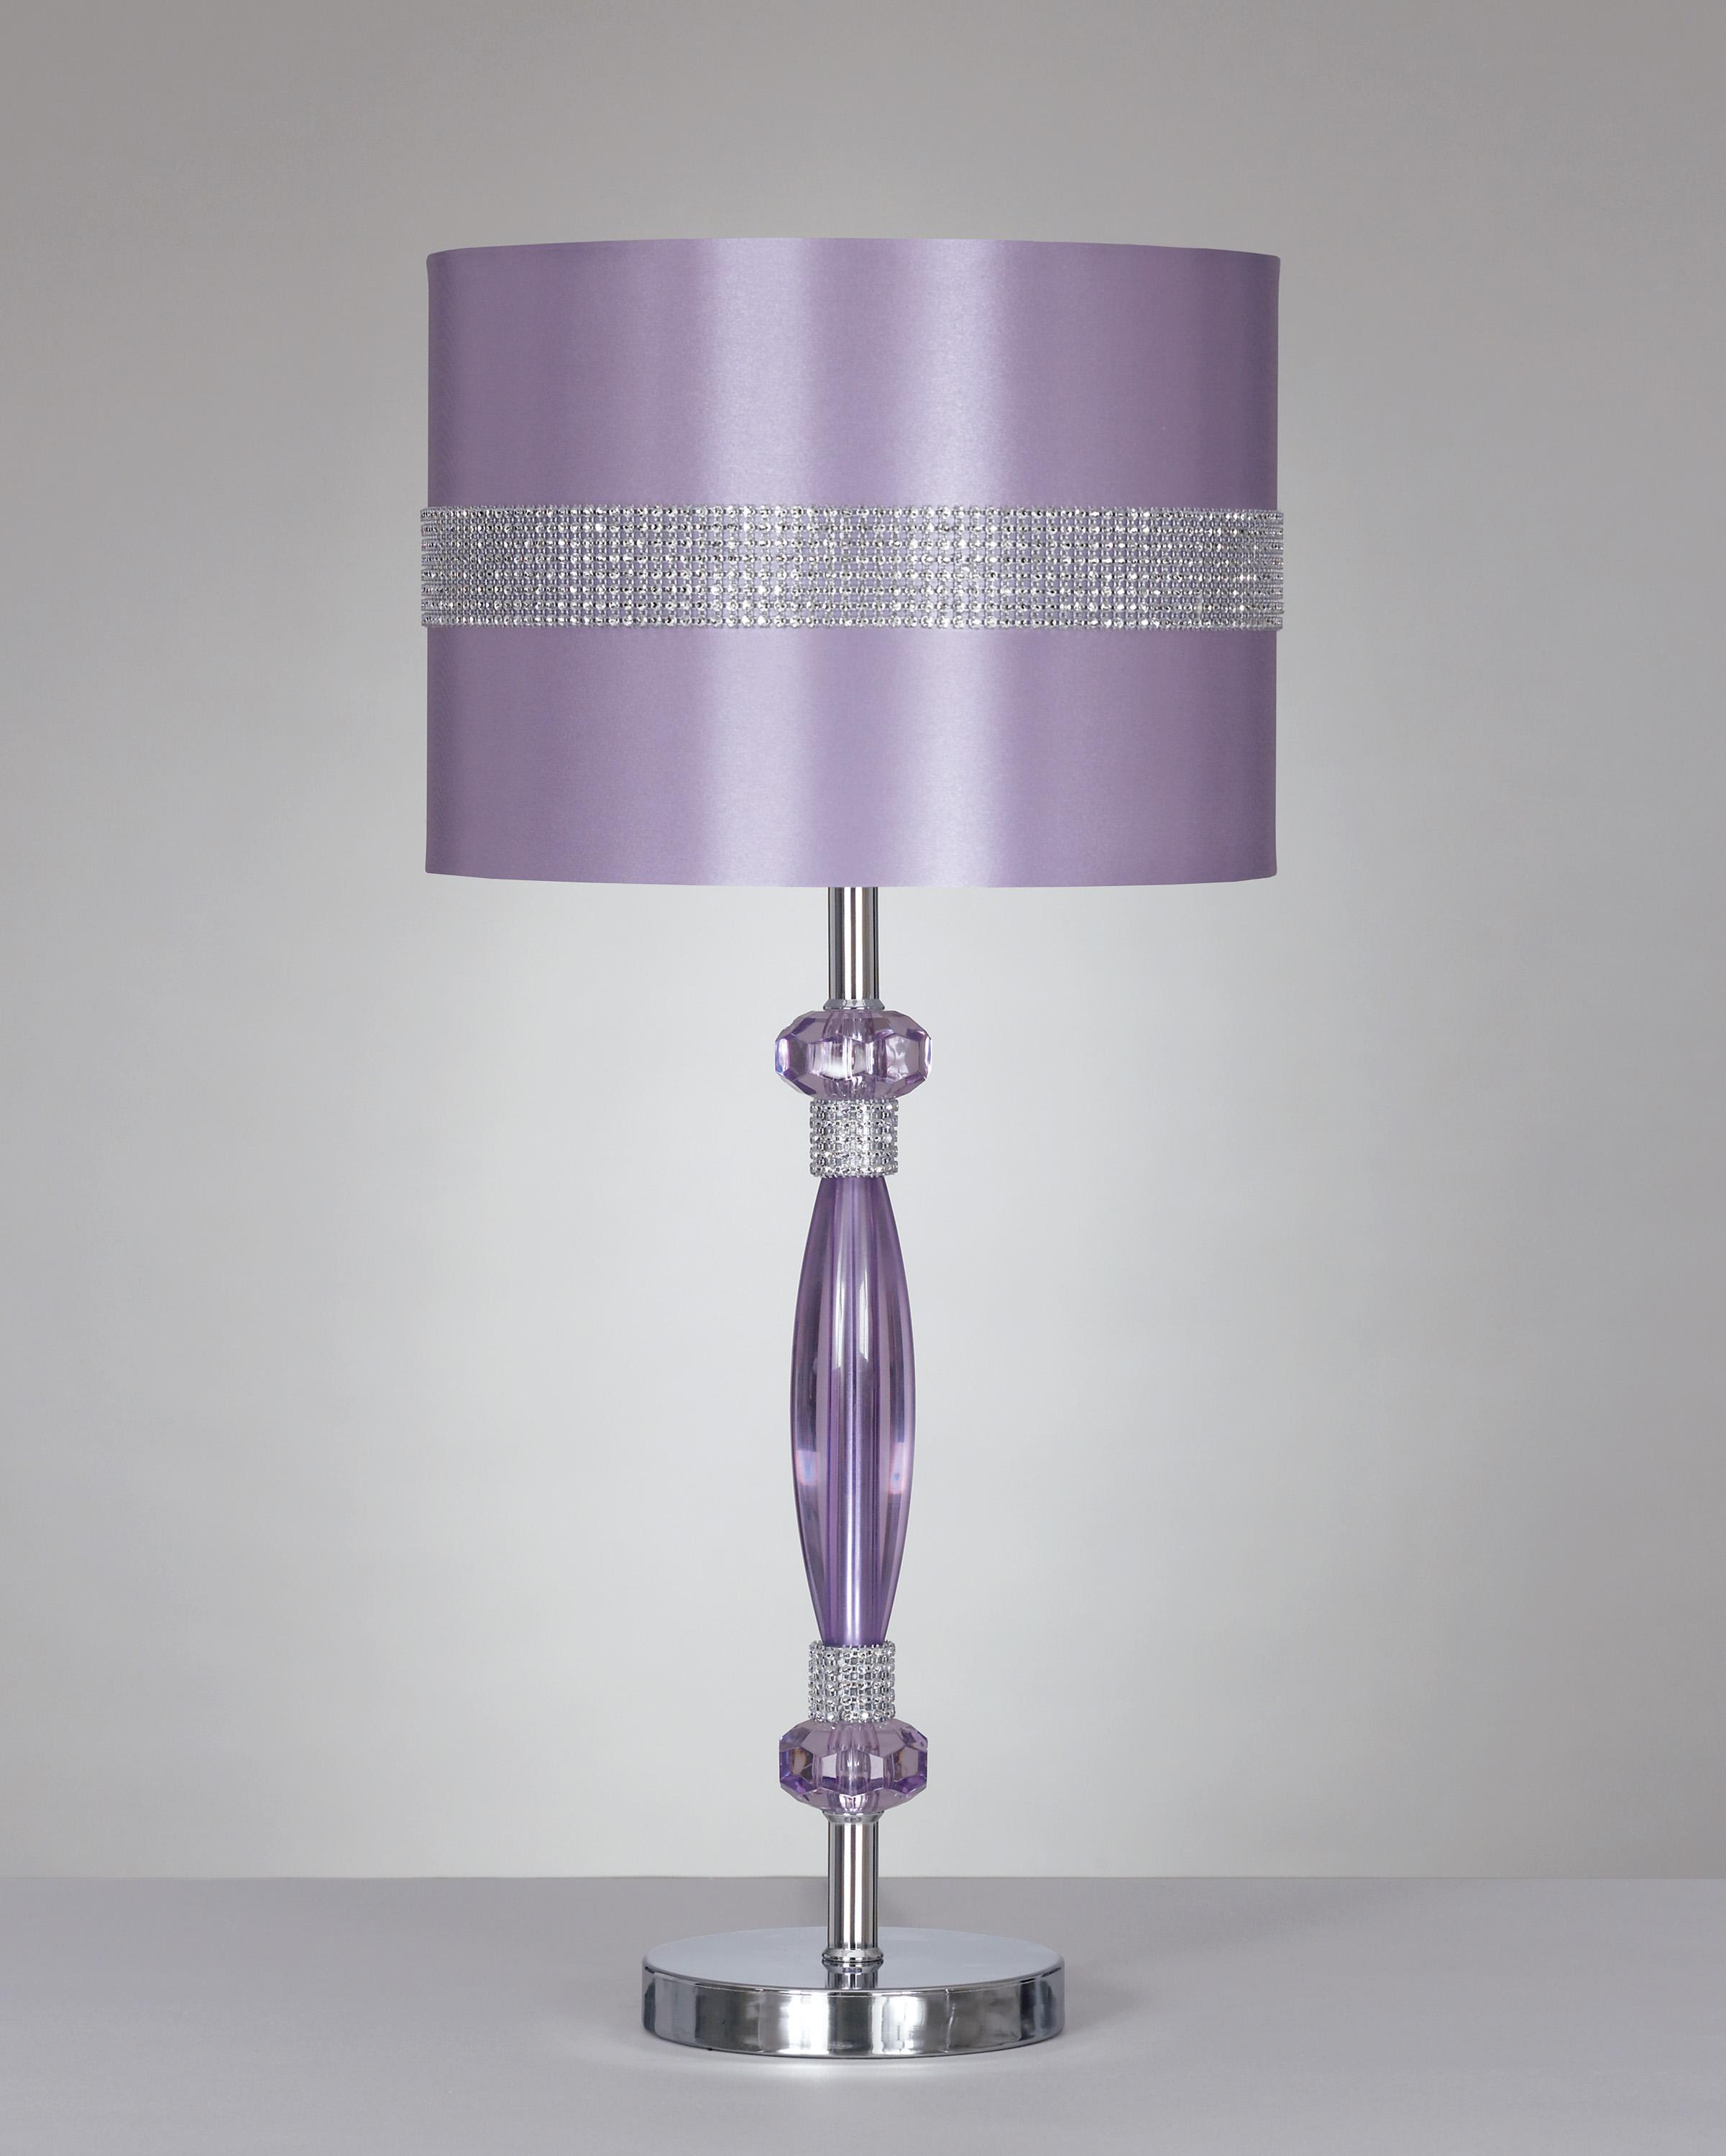 design by ashley furniture lamps contemporary nyssa metal table lamp. Black Bedroom Furniture Sets. Home Design Ideas